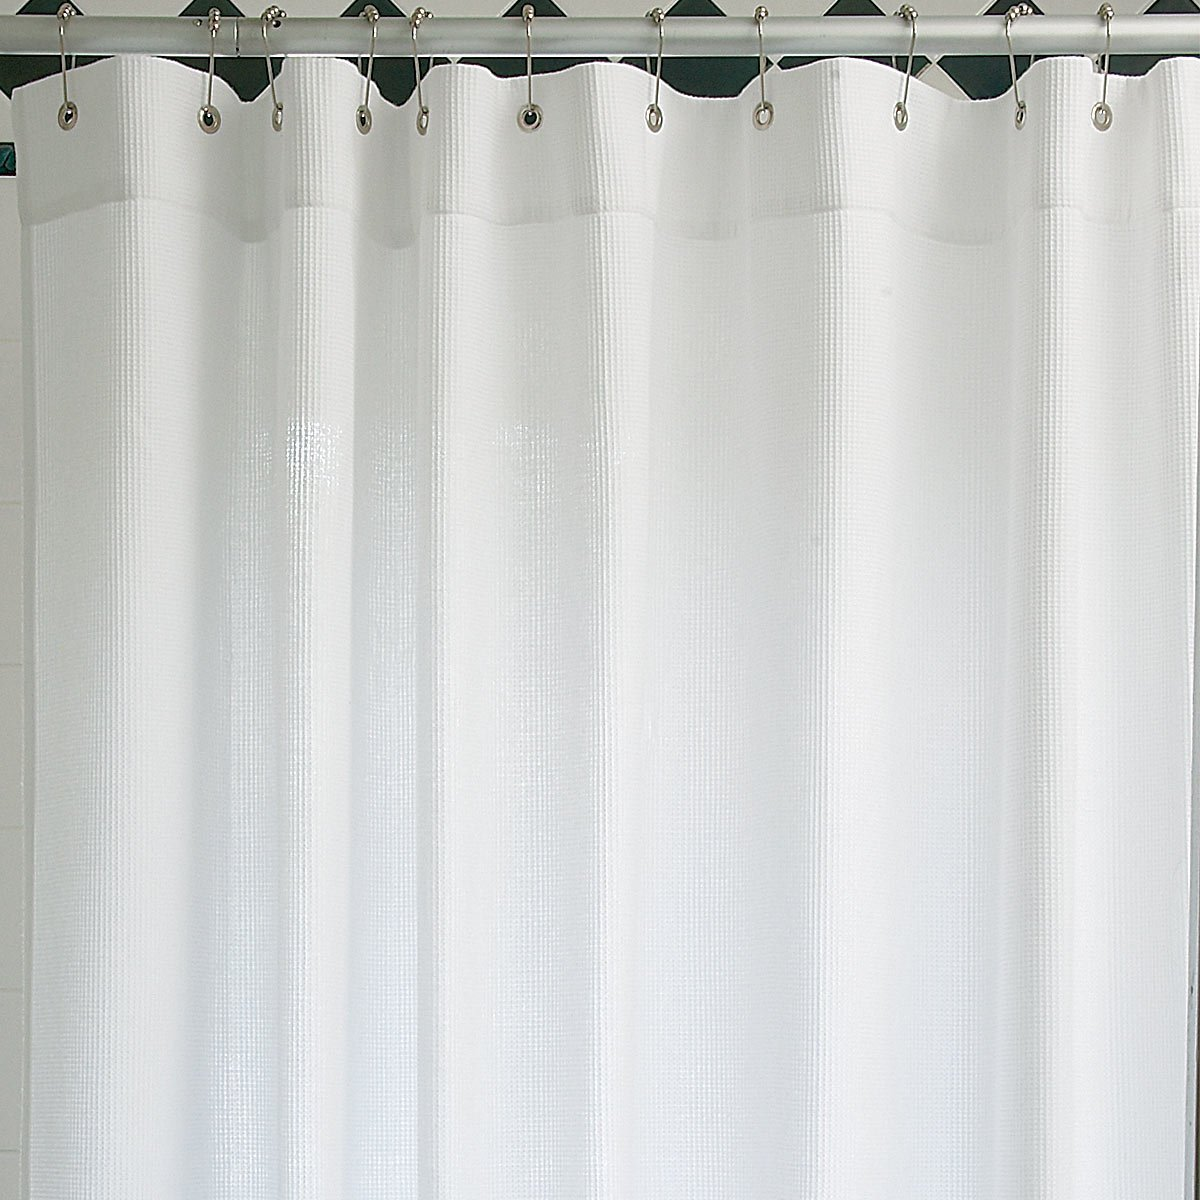 wamsutta images full brilliant liner shower wamsuttanerluxury of linerluxury sofa luxury design curtainner curtain curtainsluxury ultimate size fabric curtains